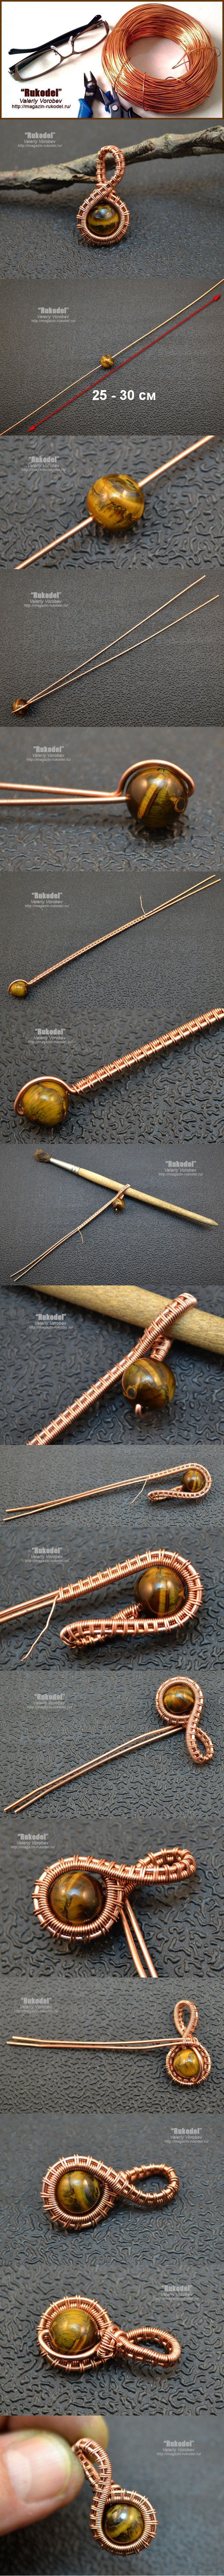 Wire Wrap. Подвеска из проволоки - фото.   Рукодел  Wire Wrap Tutorial includes easy to follow pictures and a video that can be visually understood.